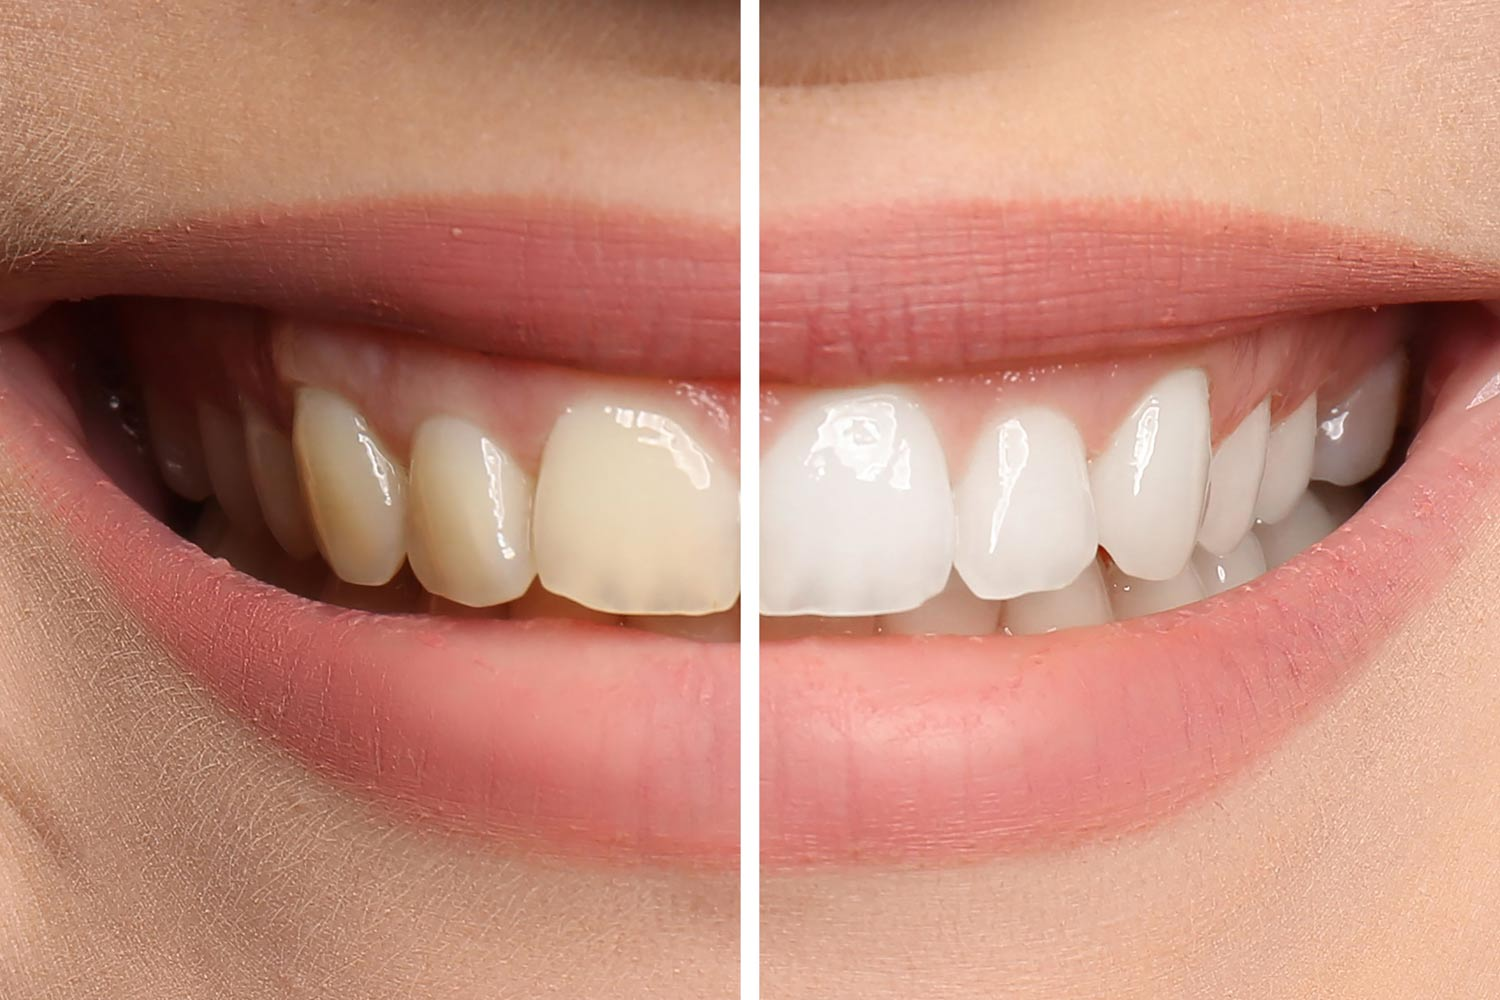 Dental Insurance – How Does It Provide for Cosmetic Teeth Whitening?